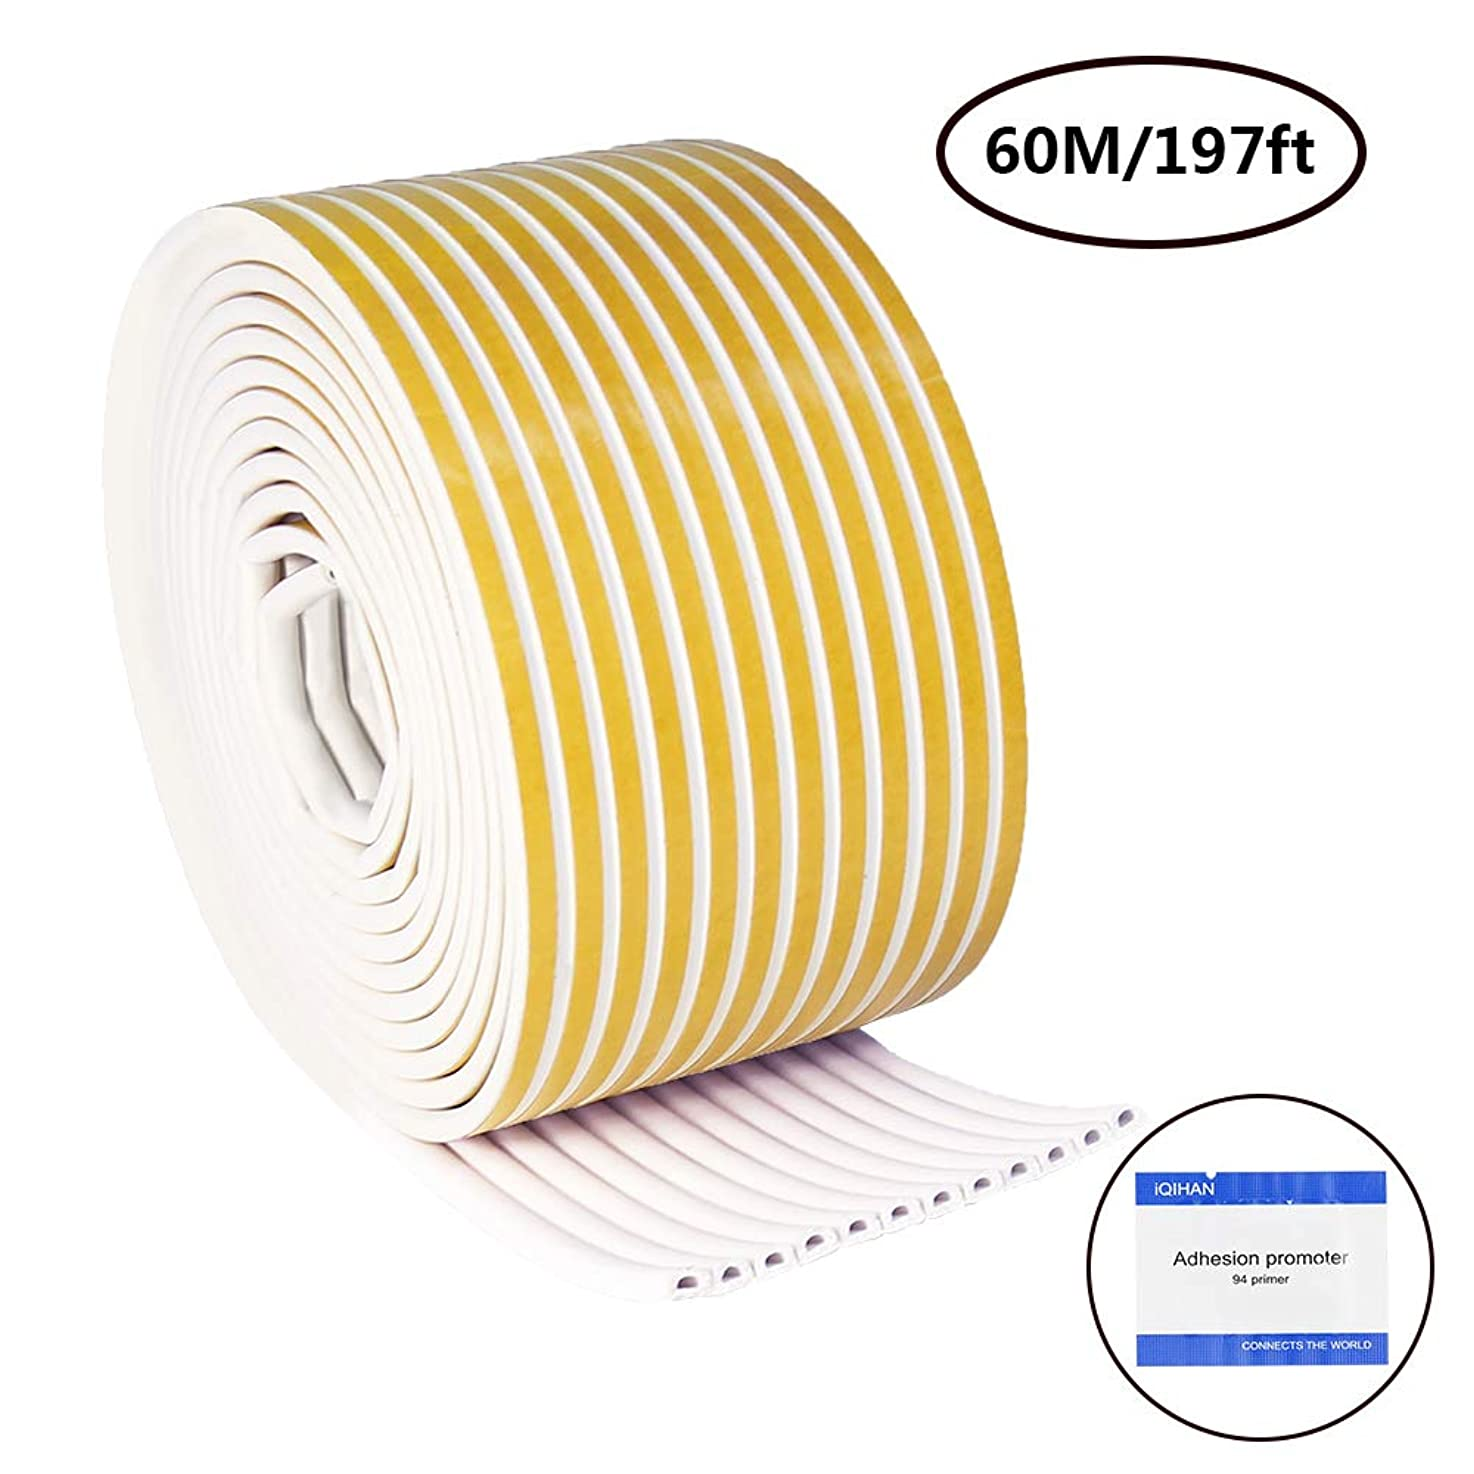 Benavvy 197Feet/60m D Type EPDM Weather Stripping Self Adhesive Foam for Doors and Windows, Soundproof, Dustproof Door Gap Seal Blocker, 7/20-Inch x 6/25-Inch x 16.4-Feet (D Style)